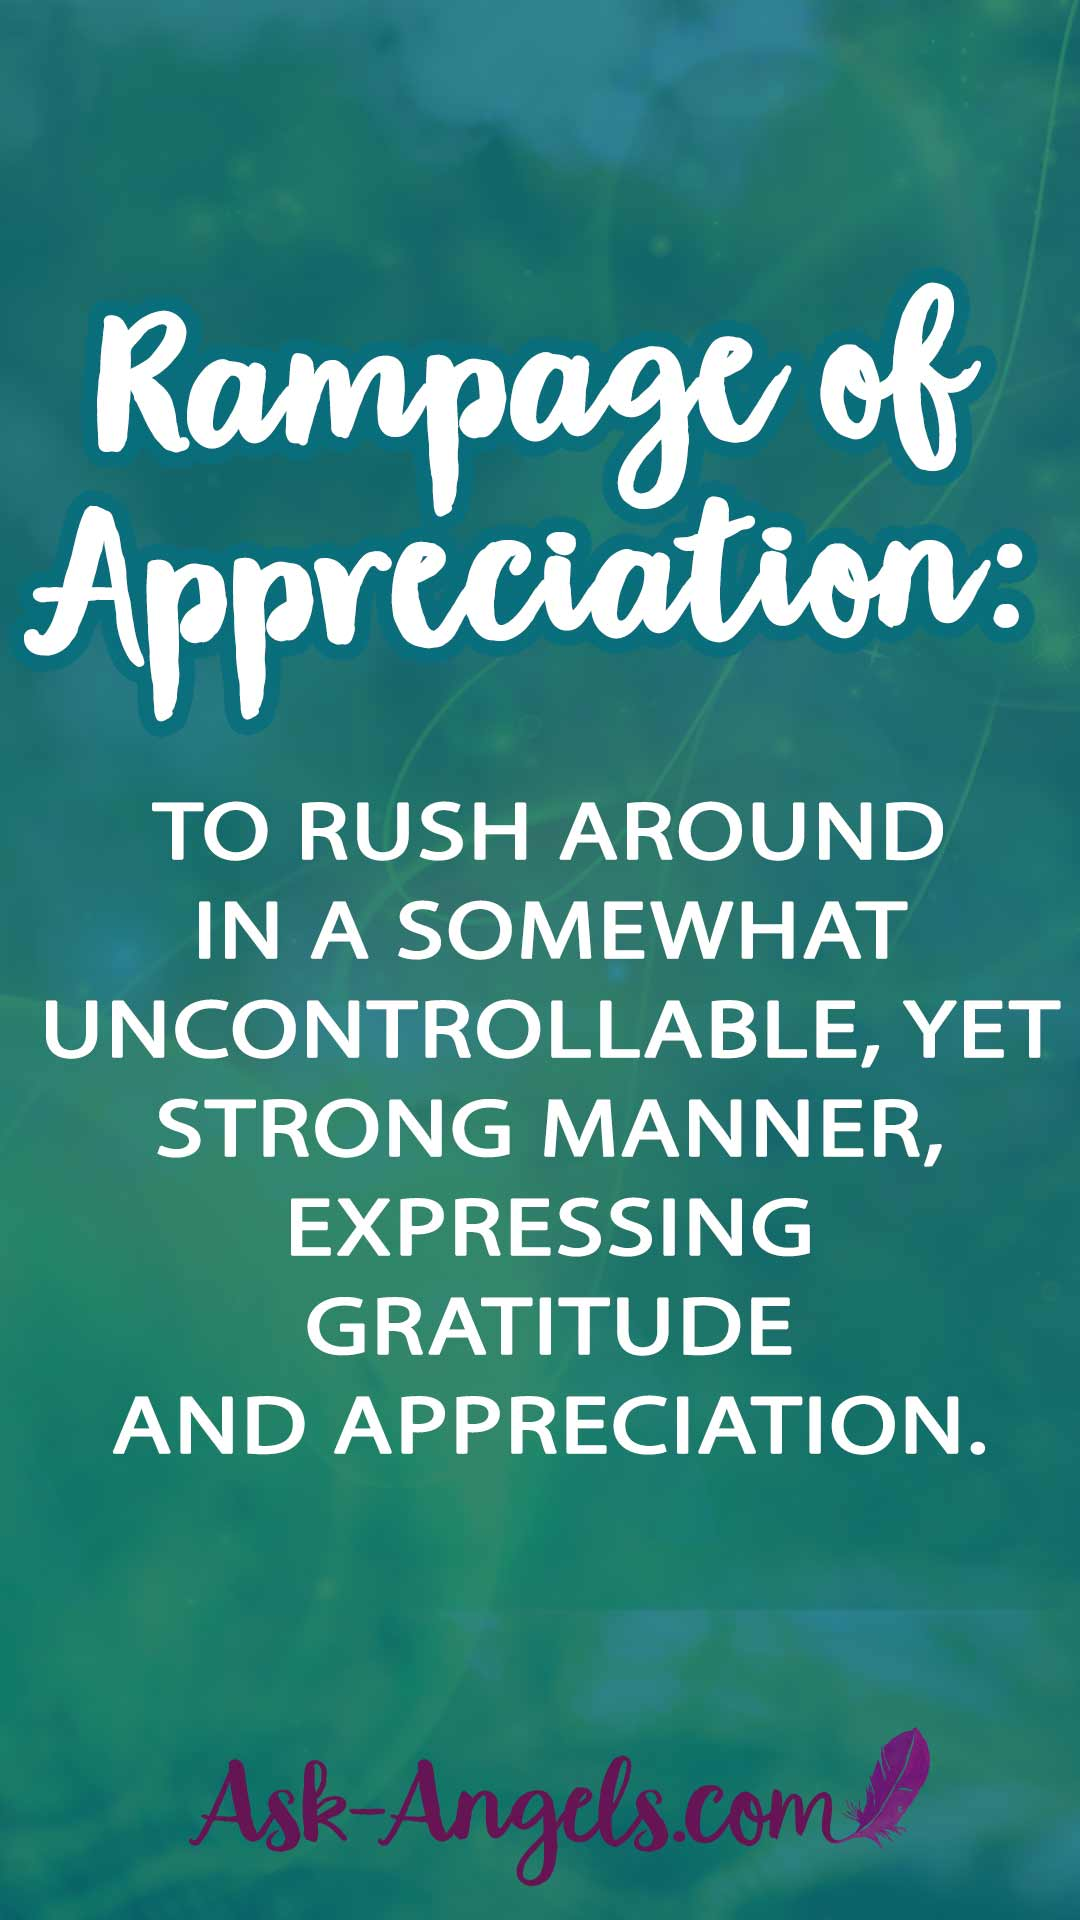 Learn the simple Law of Attraction Practice, the Rampage of Appreciation